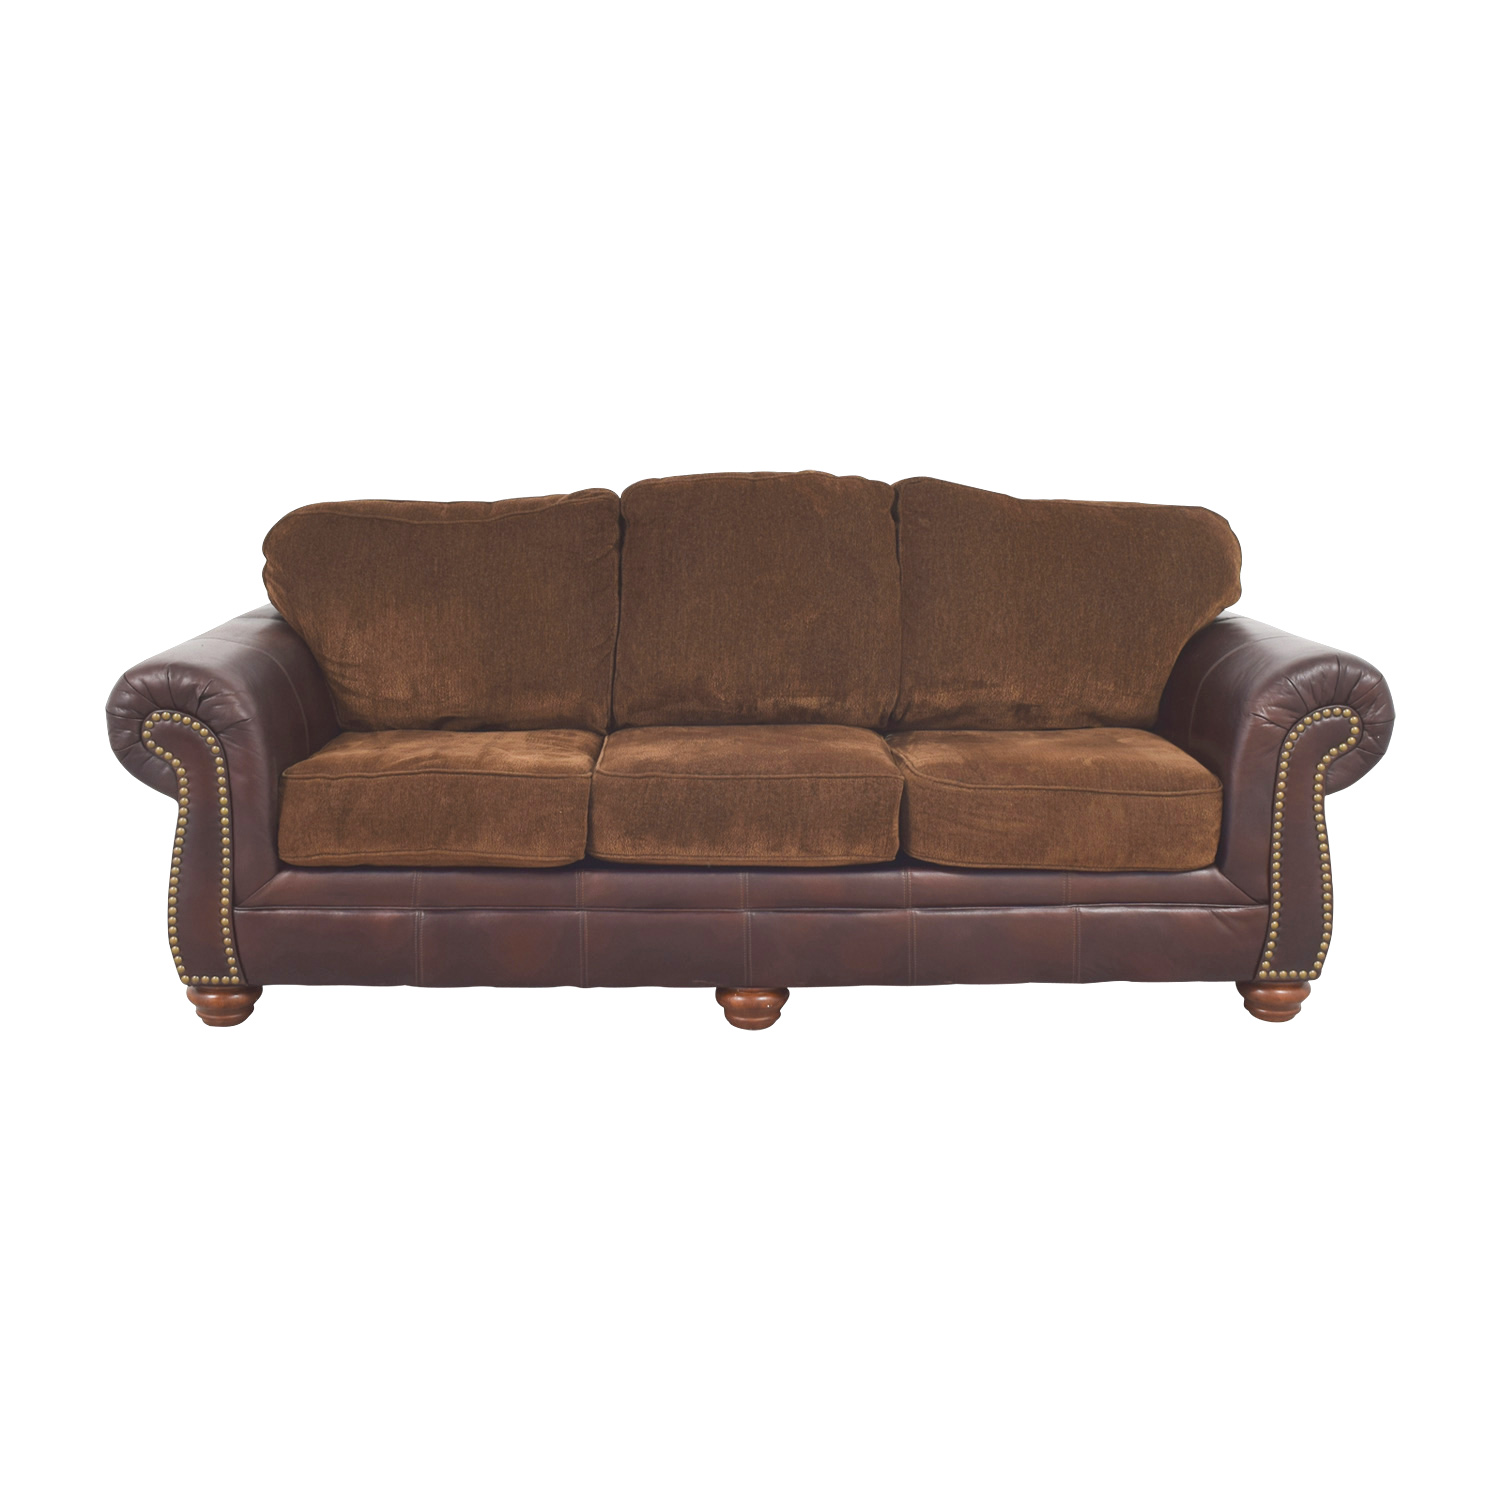 buy Simmons Simmons Sofa with Leather Arms online